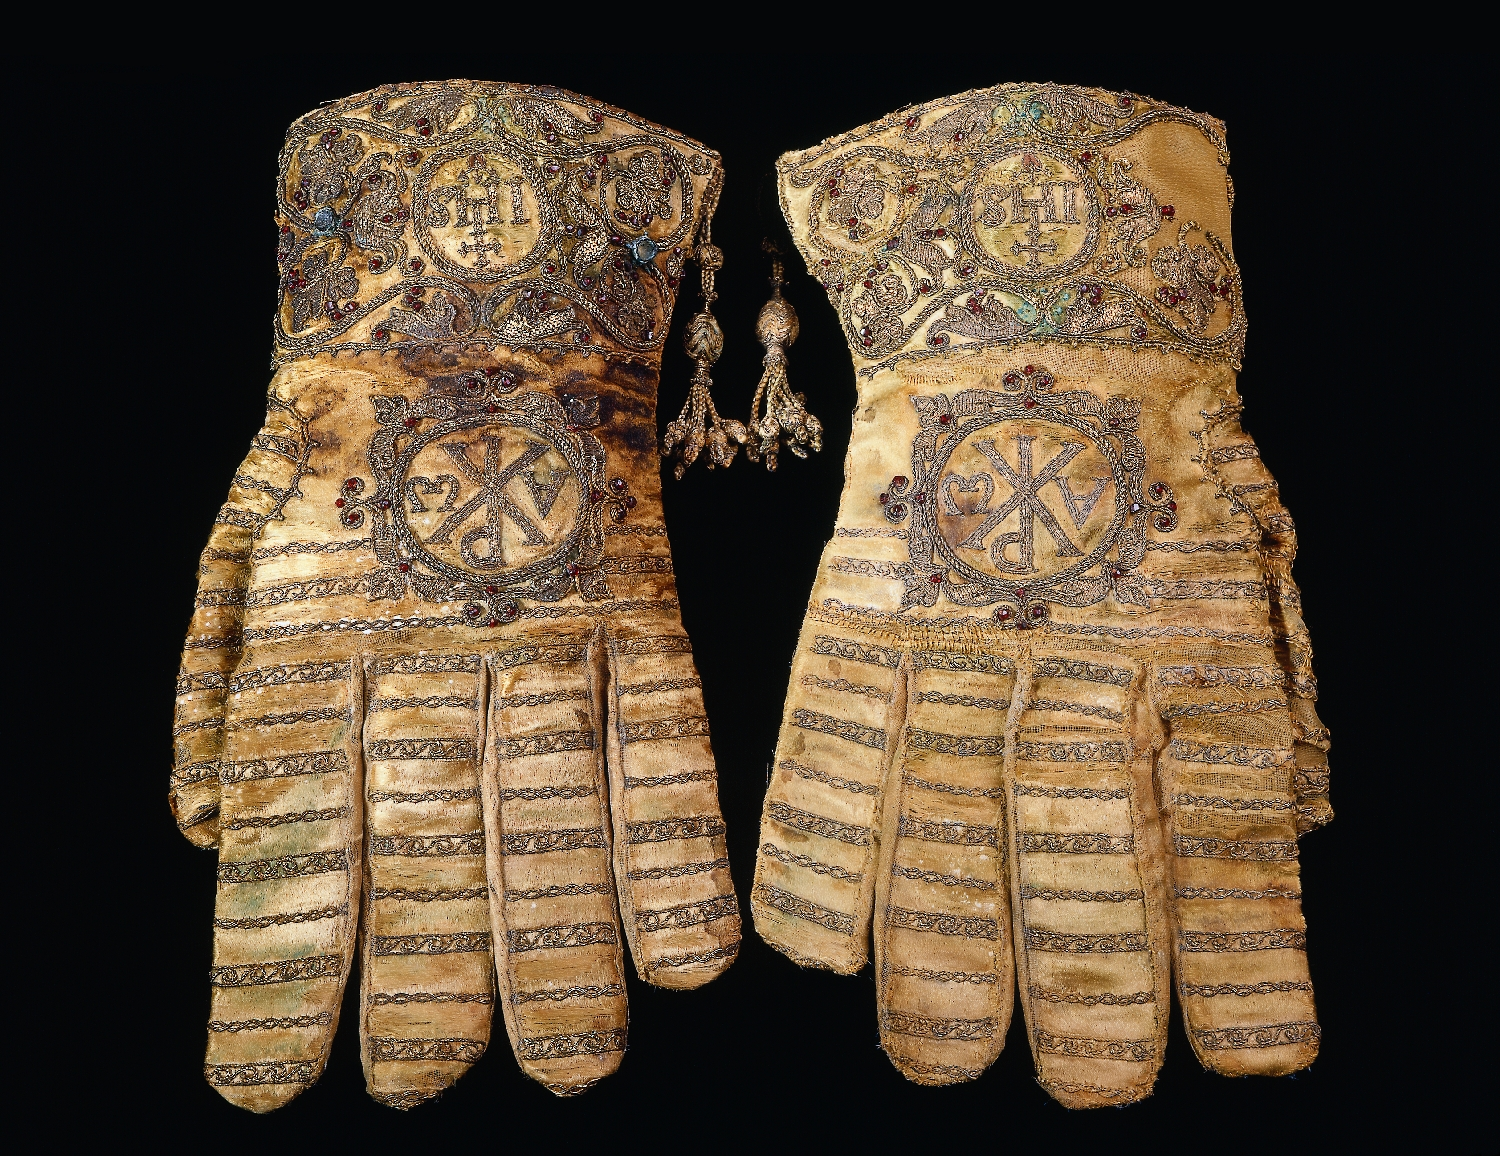 Pontifical gloves of the Salzburg prince archbishop Wolf Dietrich von Raitenau, Italy, 1588, atlas silk, gold embroidery, relief embroidery, garnets, silk, inv. no. 4559-49